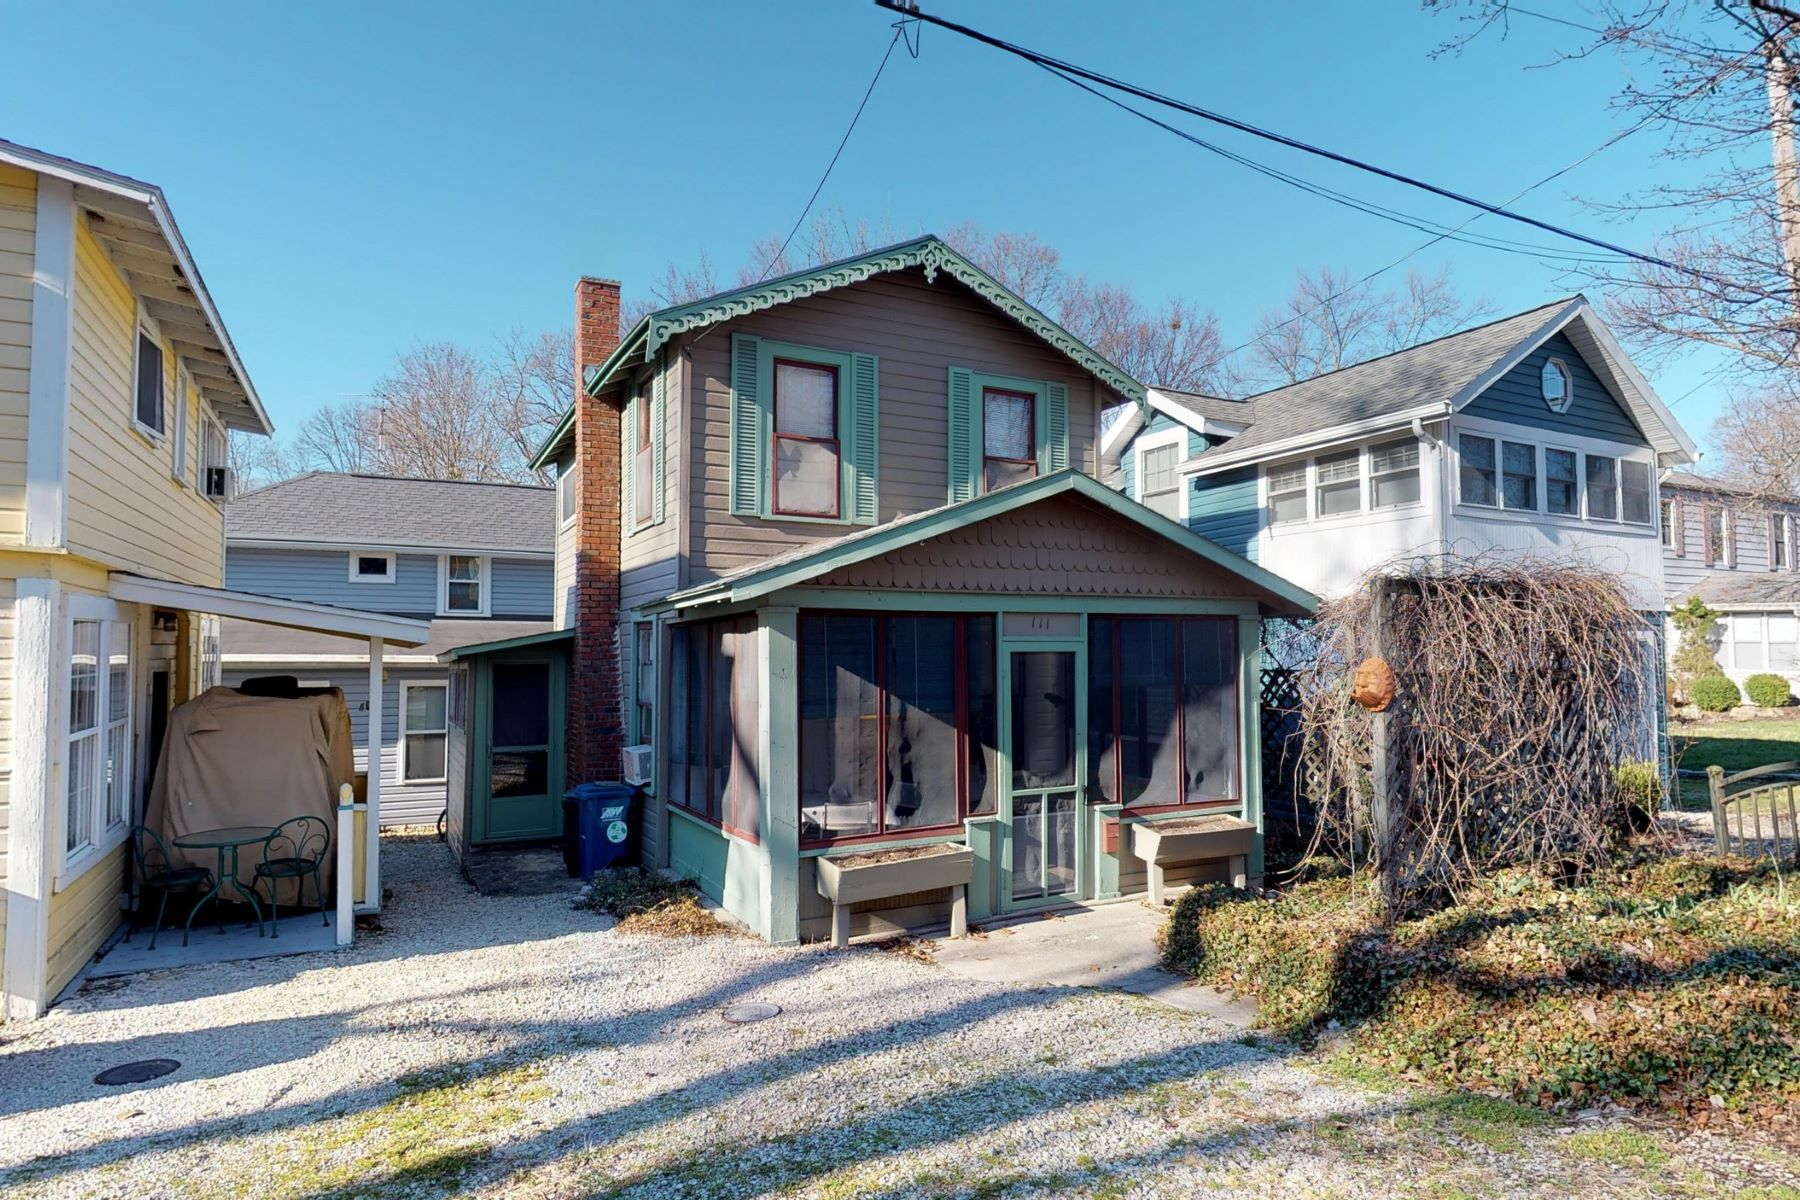 Single Family Homes for Sale at 111 East Fourth Street Lakeside, Ohio 43440 United States